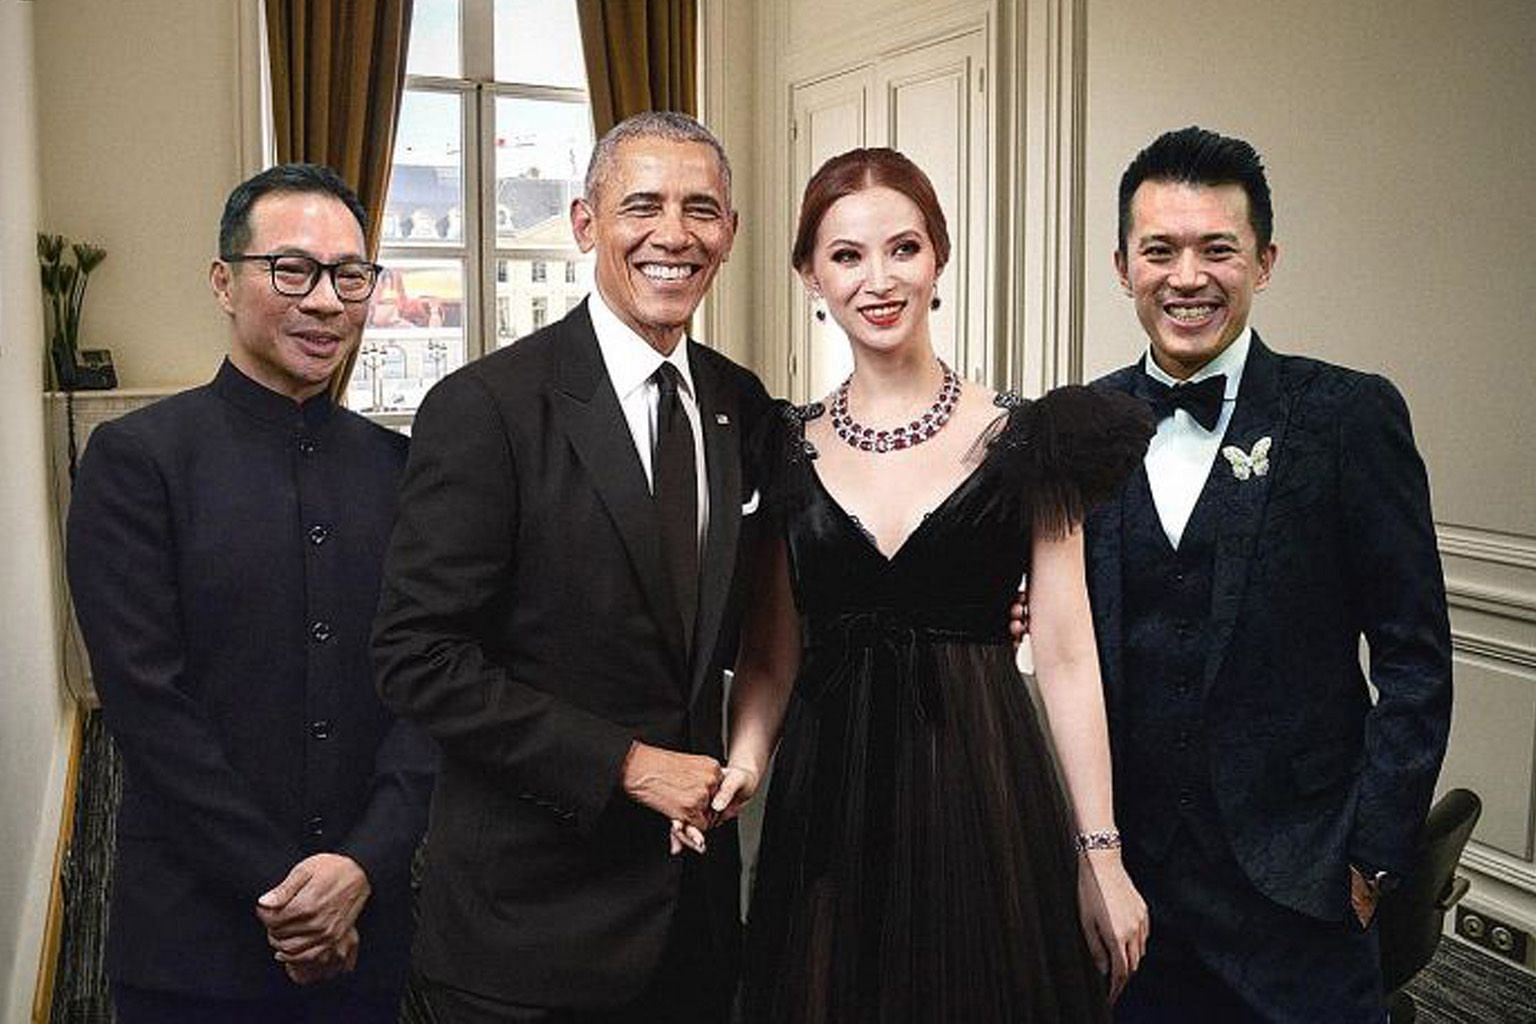 (Above) The group's chief marketing and investor relations officer Nereides Antonio Giamundo de Bourbon admitted to Reuters that it had doctored photos of Mr Obama to make them look as if he had attended a meeting with its executives in Paris.